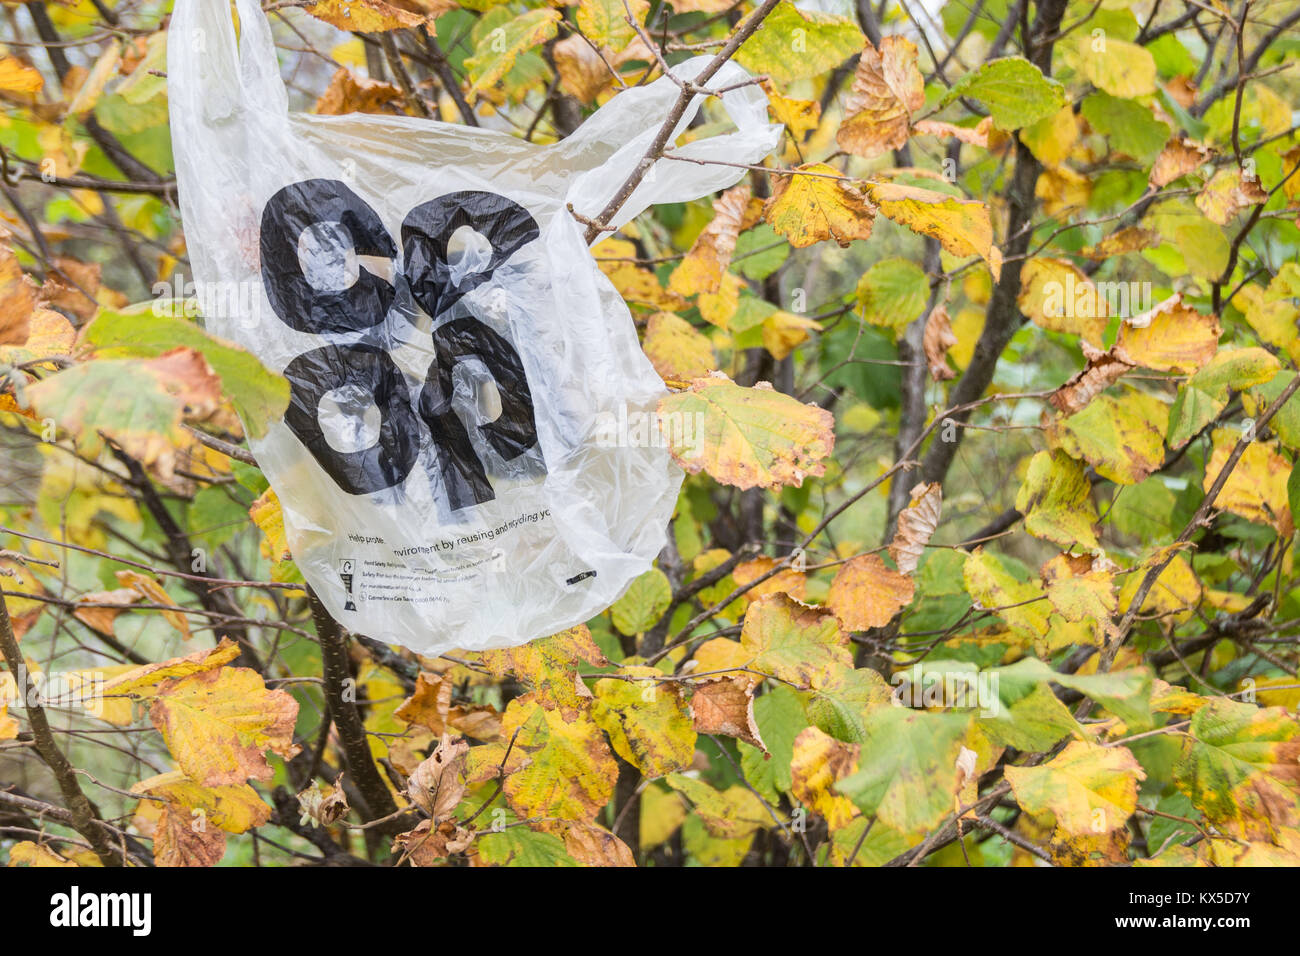 Plastic Coop supermarket bag on tree. UK - Stock Image